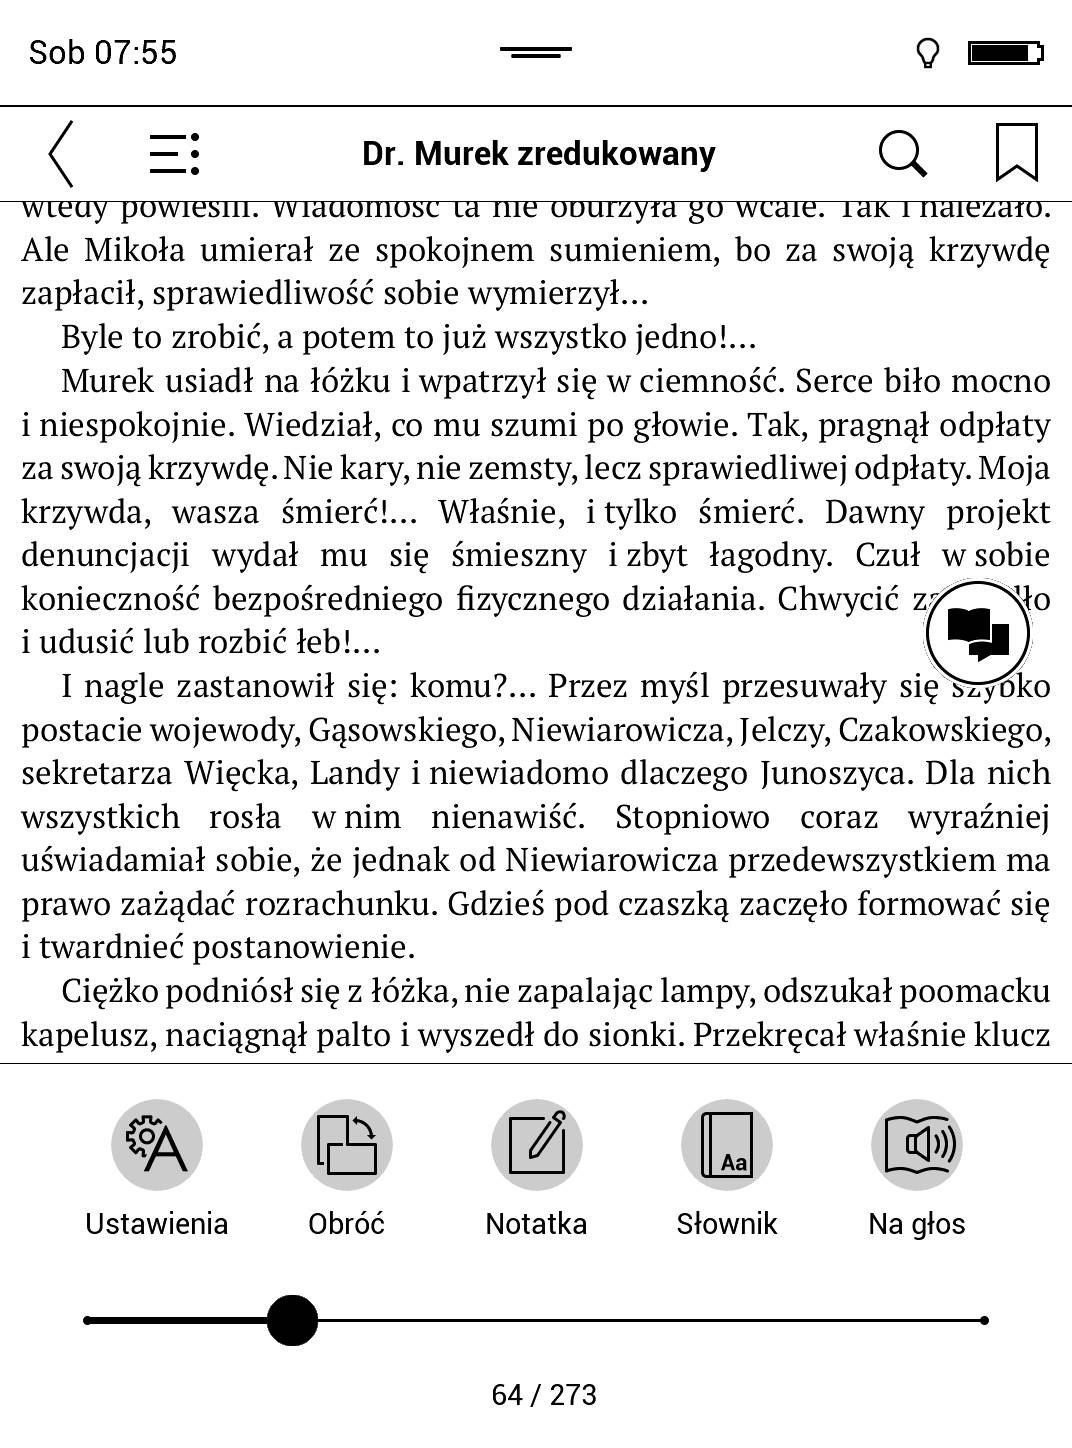 menu główne e-booka w PocketBook Touch HD 2